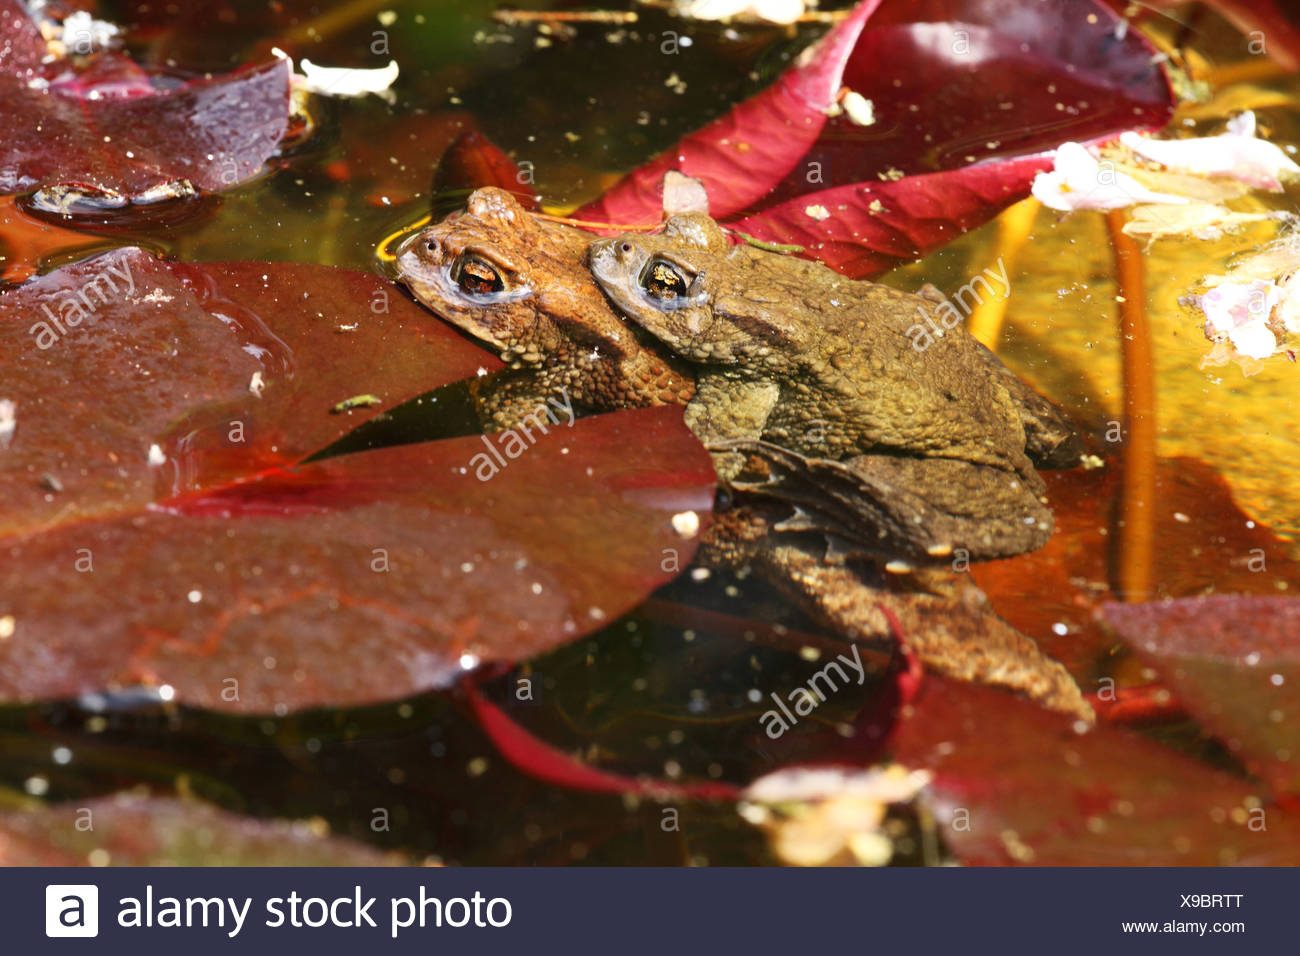 Two common toads, bufo bufo, in pond Stock Photo